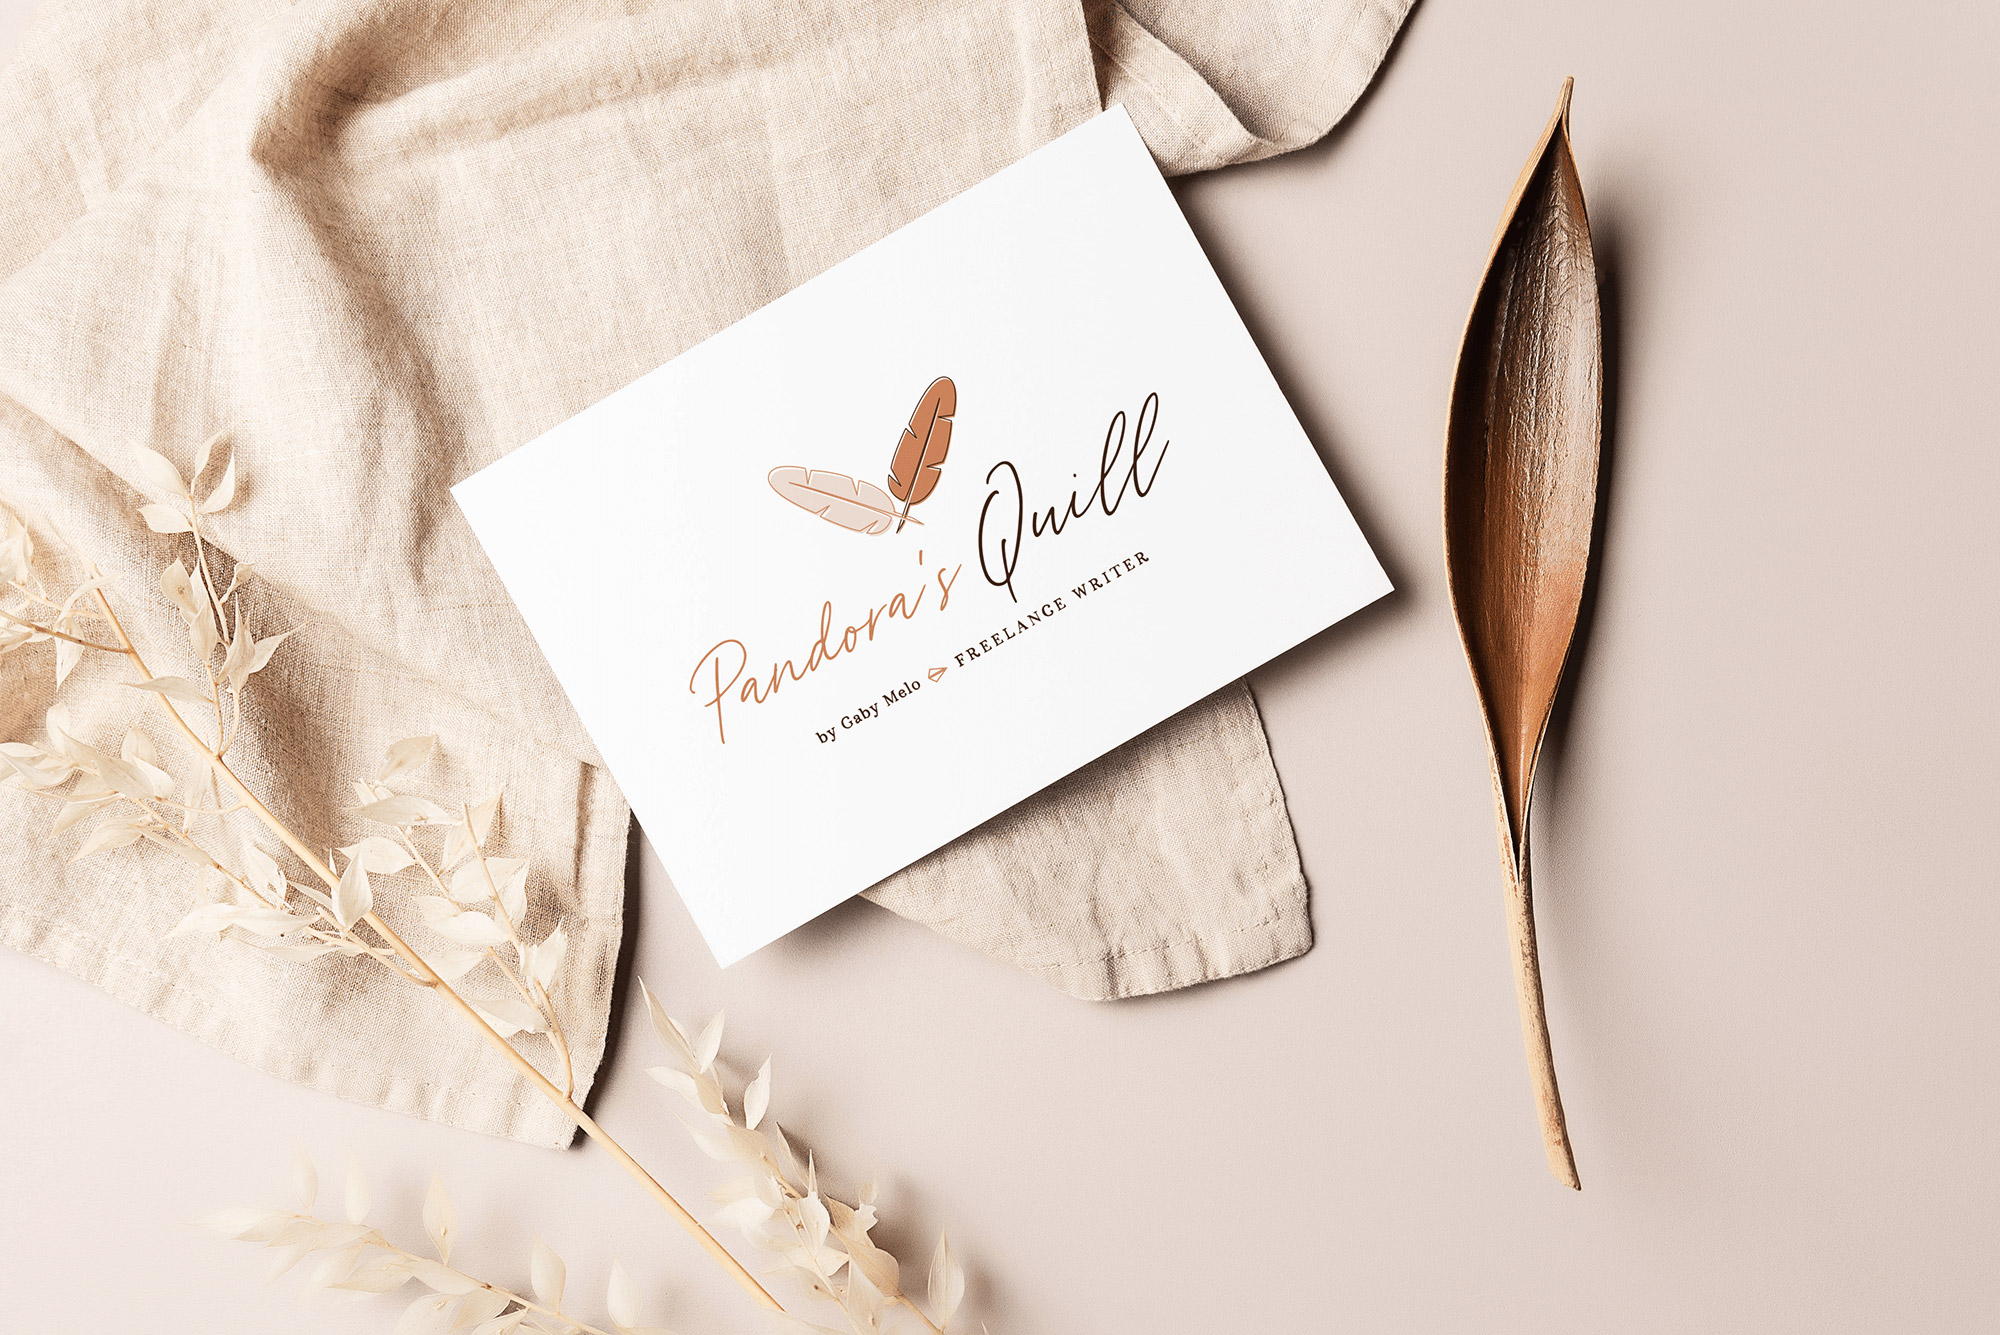 Identidade Visual exclusiva para Pandora's Quill - Design by Adrielly Sato